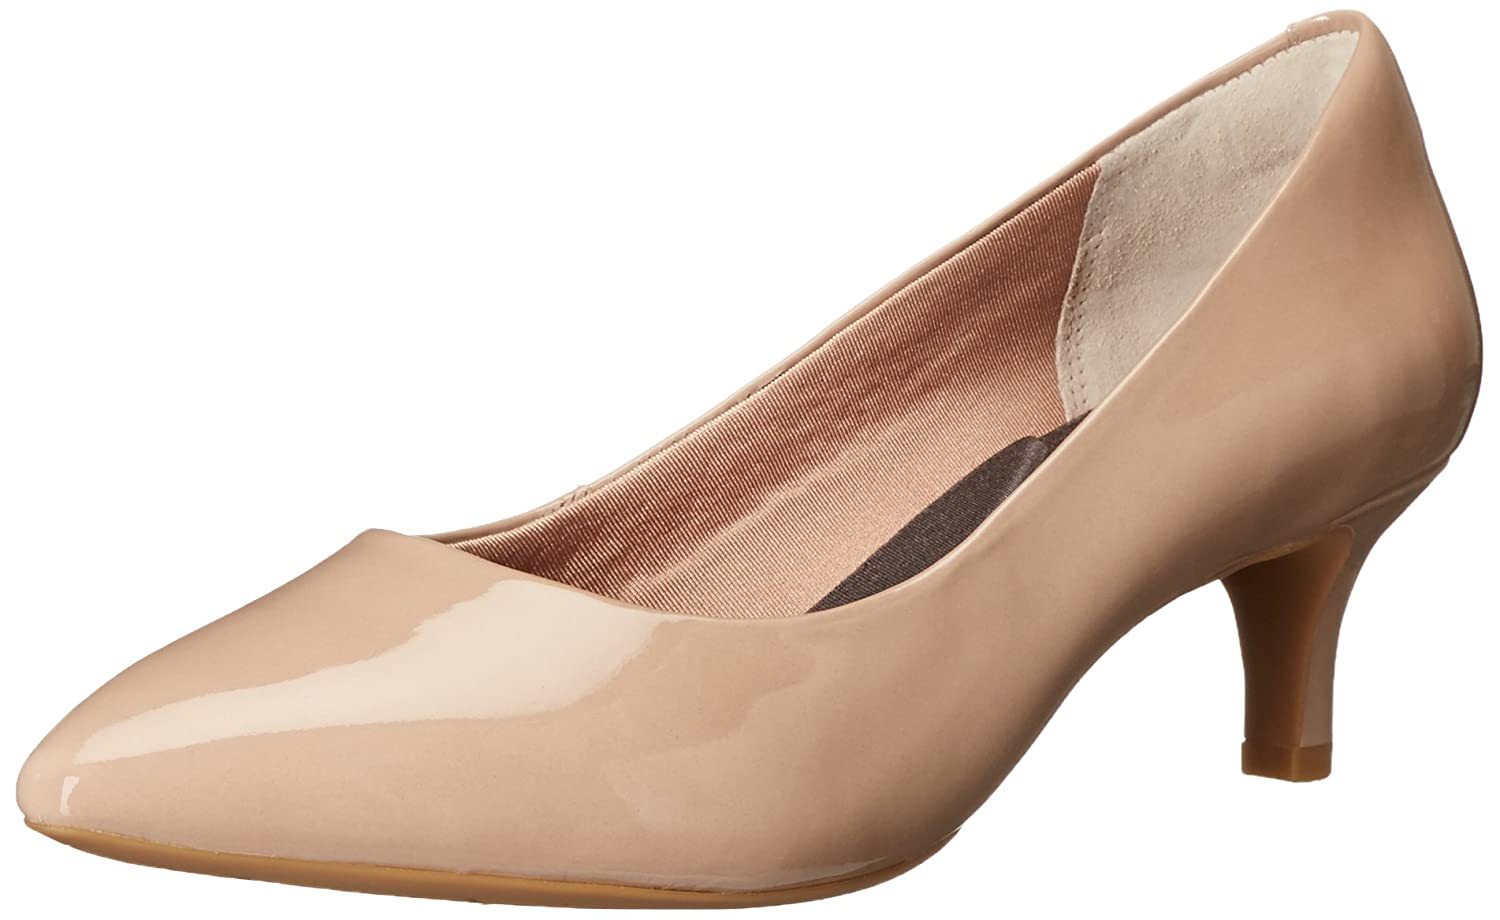 Rockport Women's Total Motion Kalila Dress Pump B01ABS0R2Q 8 N US|Warm Taupe Patent